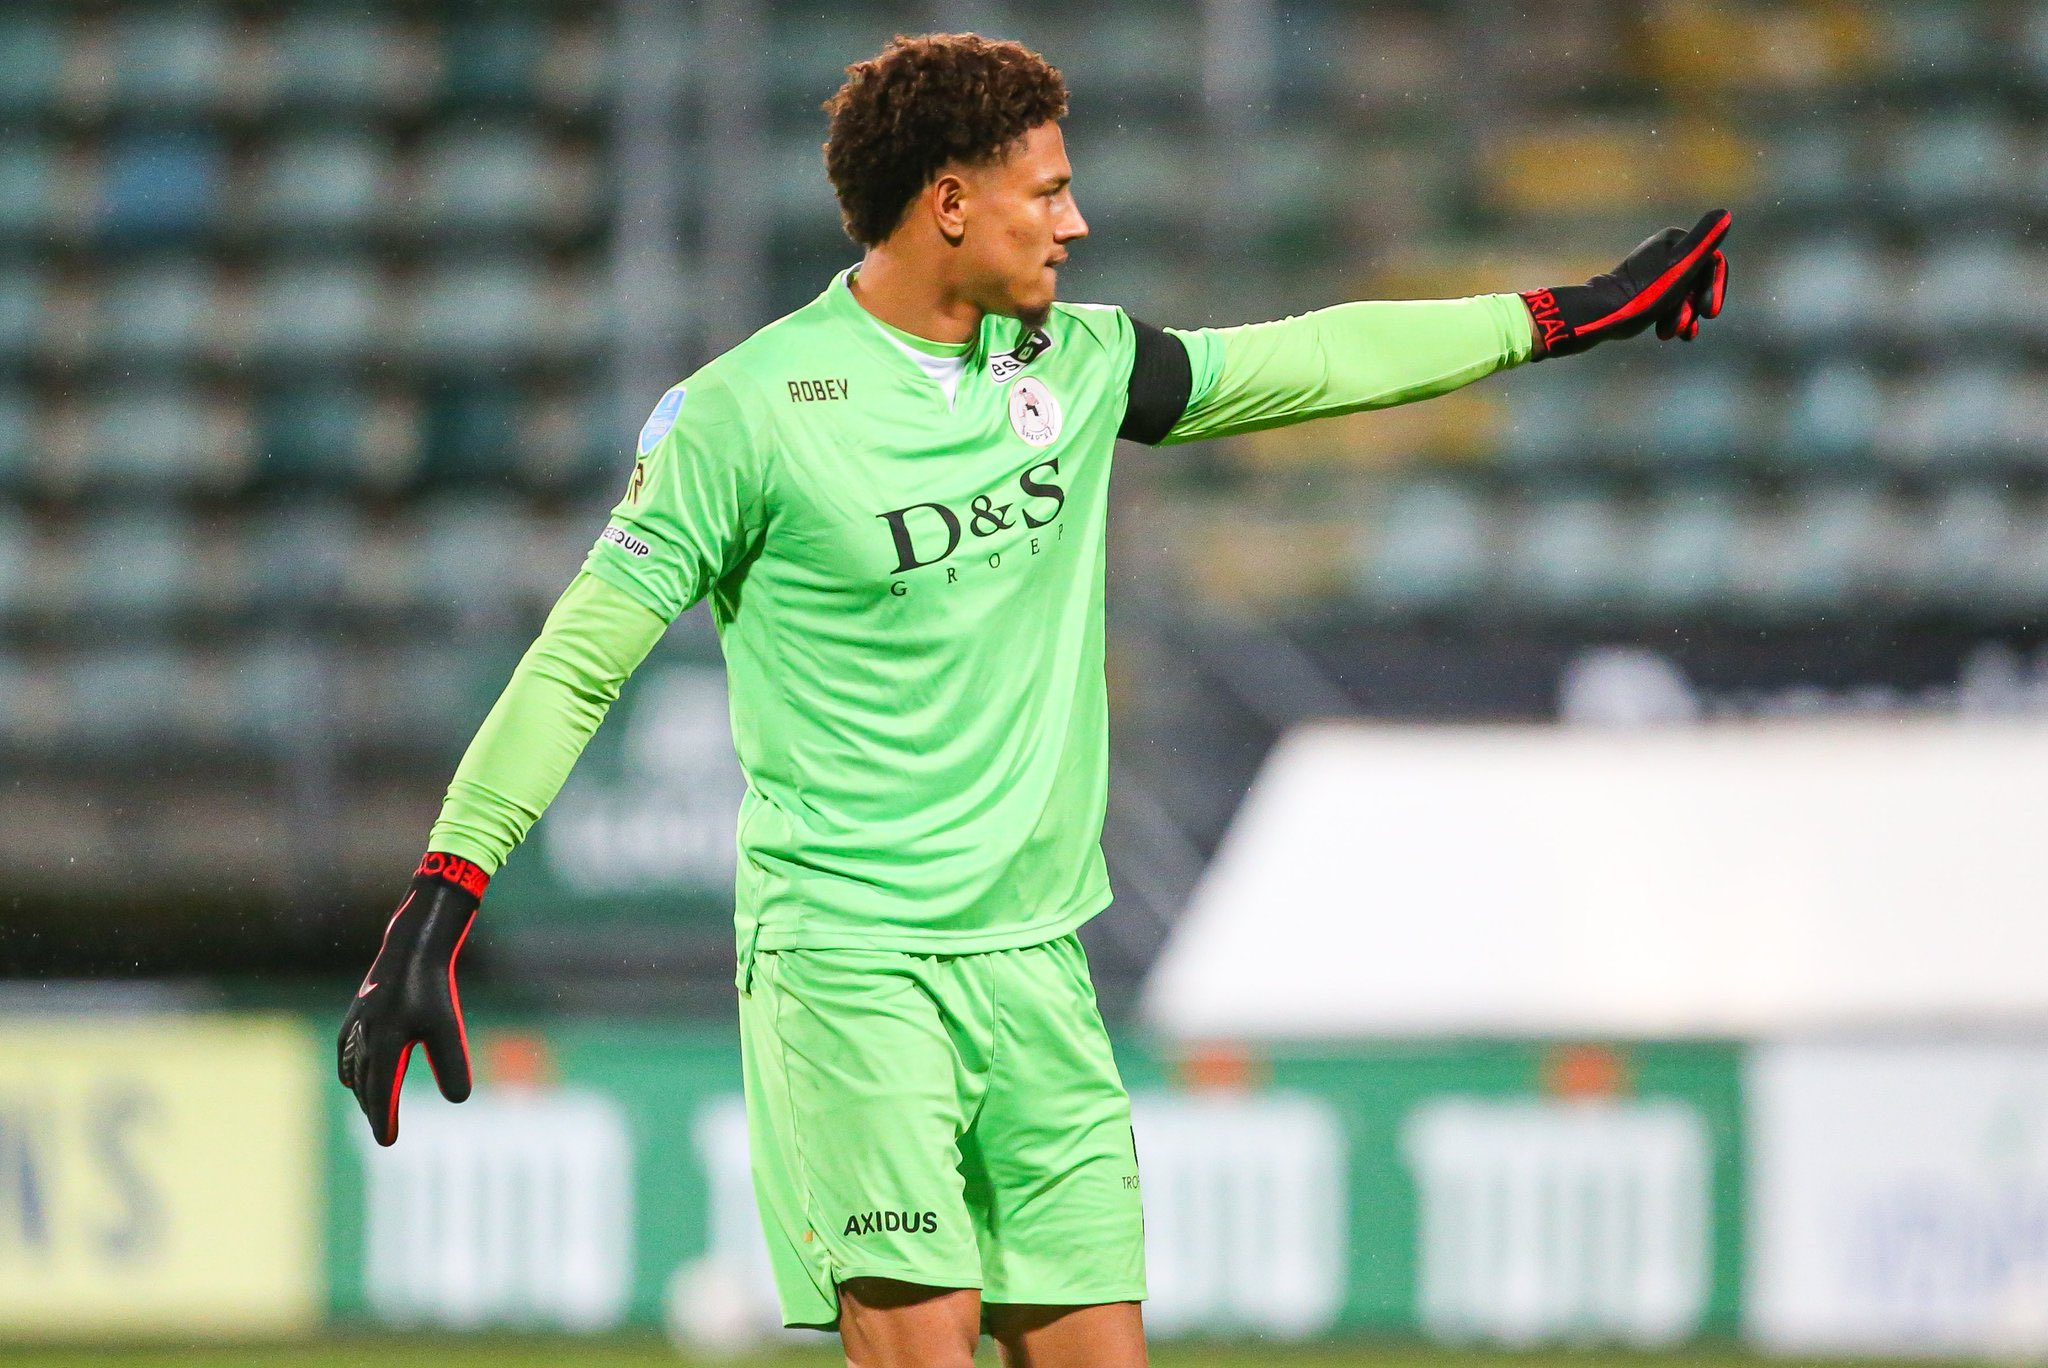 Eredivisie: Okoye In Goal As Struggling Sparta Rotterdam Suffer Defeat Again